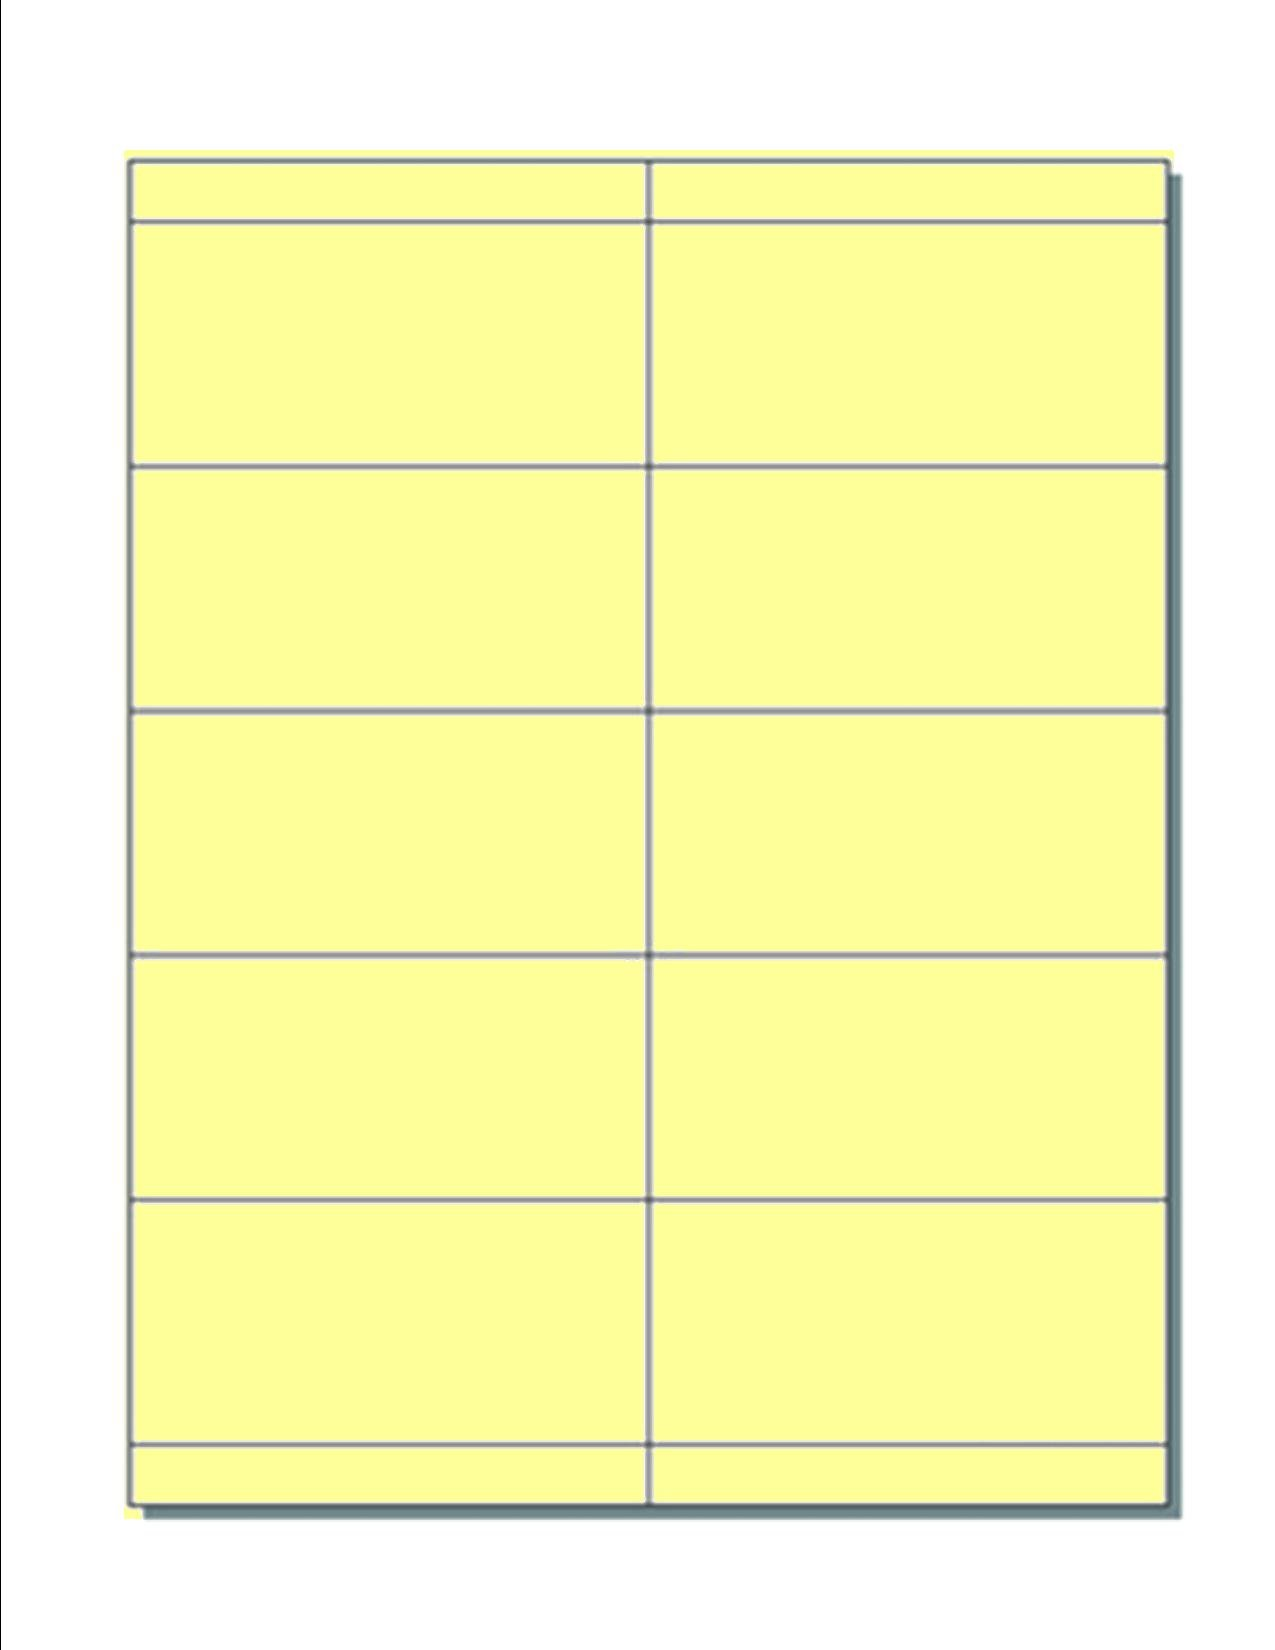 Blank Name Badge Inserts, Print-Ready on 8.5'' x 11'', 67-lb Yellow Vellum, 10 Badges Per Sheet (4.25'' x 2.5'') - 250 Sheets